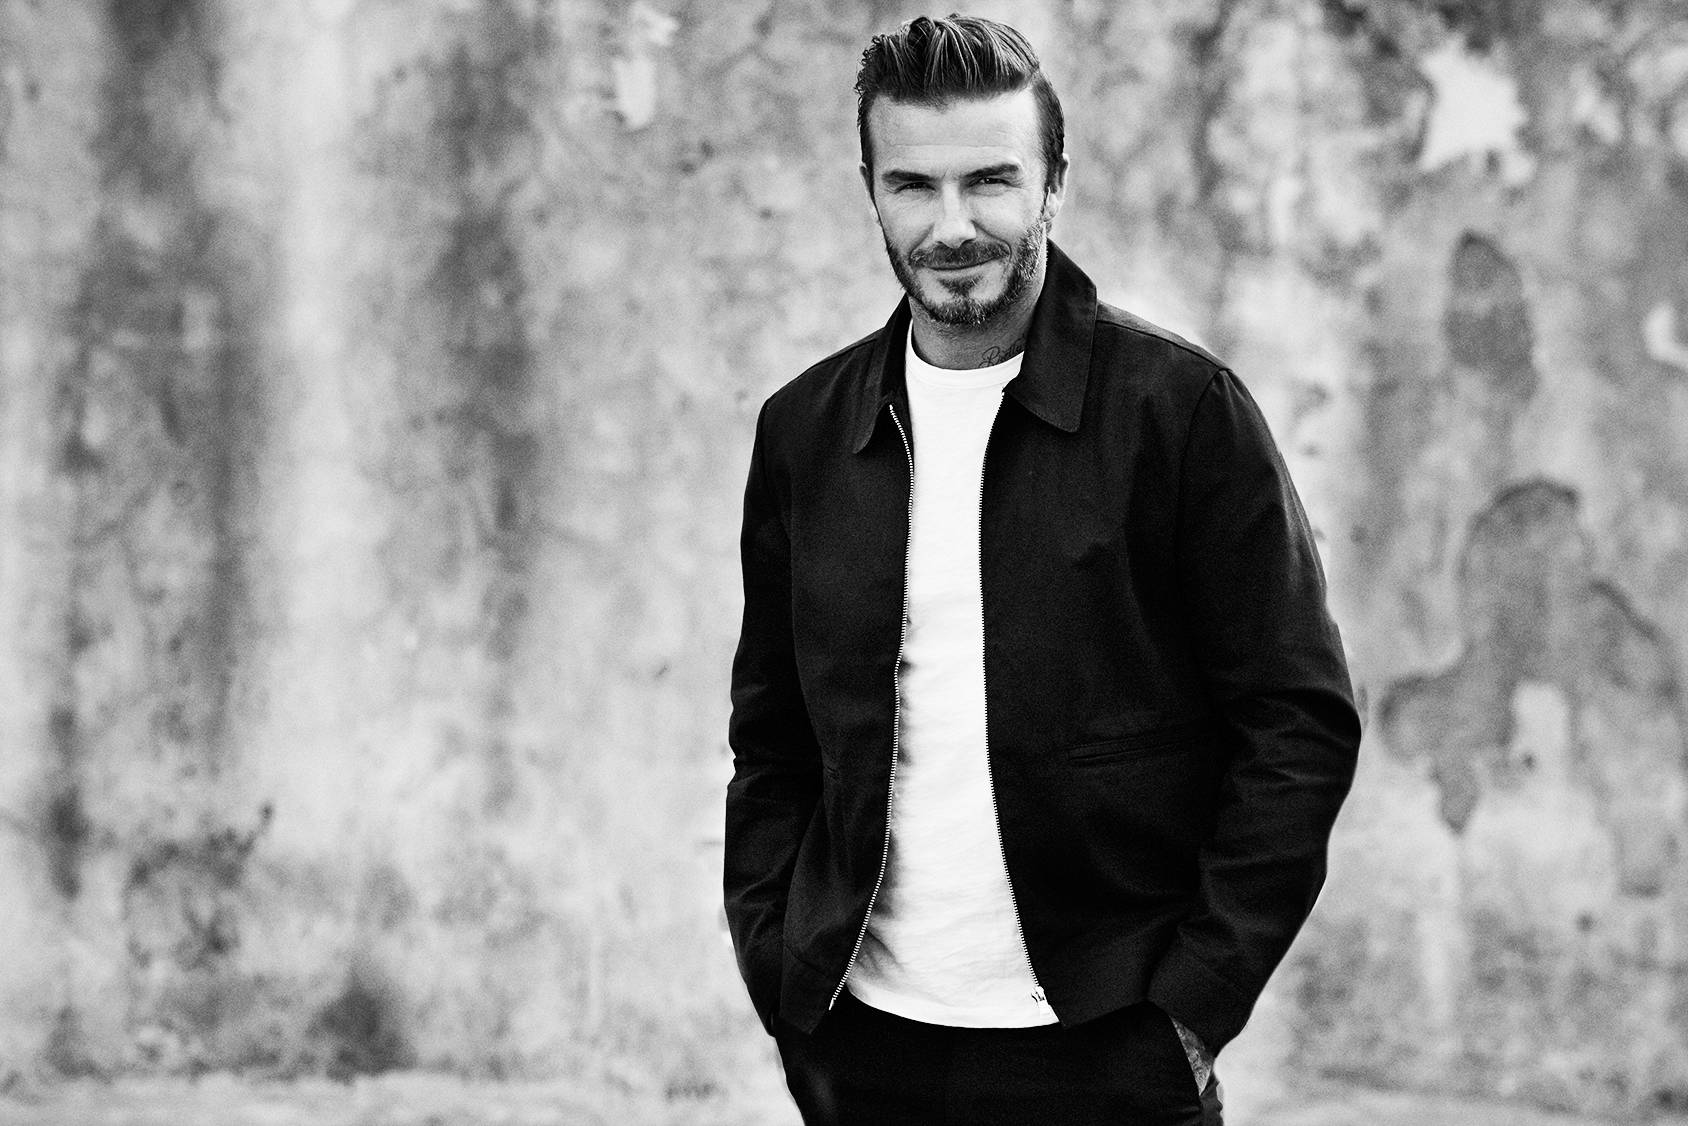 20 QUESTIONS WITH DAVID BECKHAM